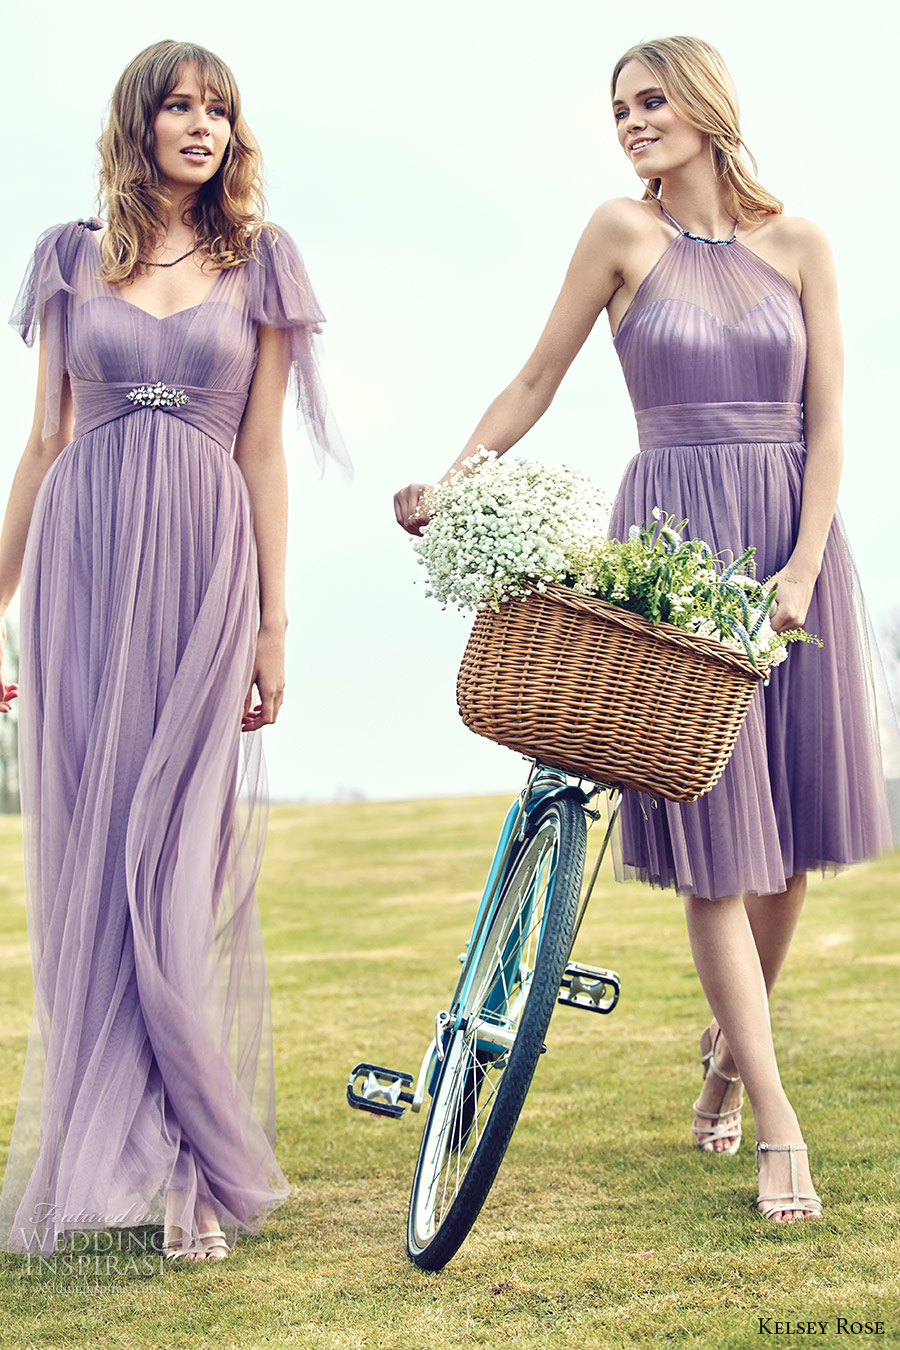 Kelsey rose 2016 bridesmaid dresses pink collection campaign kelsey rose bridesmaids 2016 pastel mix match mismatched bridesmaid dresses lavender wisteria purple lilac mauve romantic ombrellifo Images